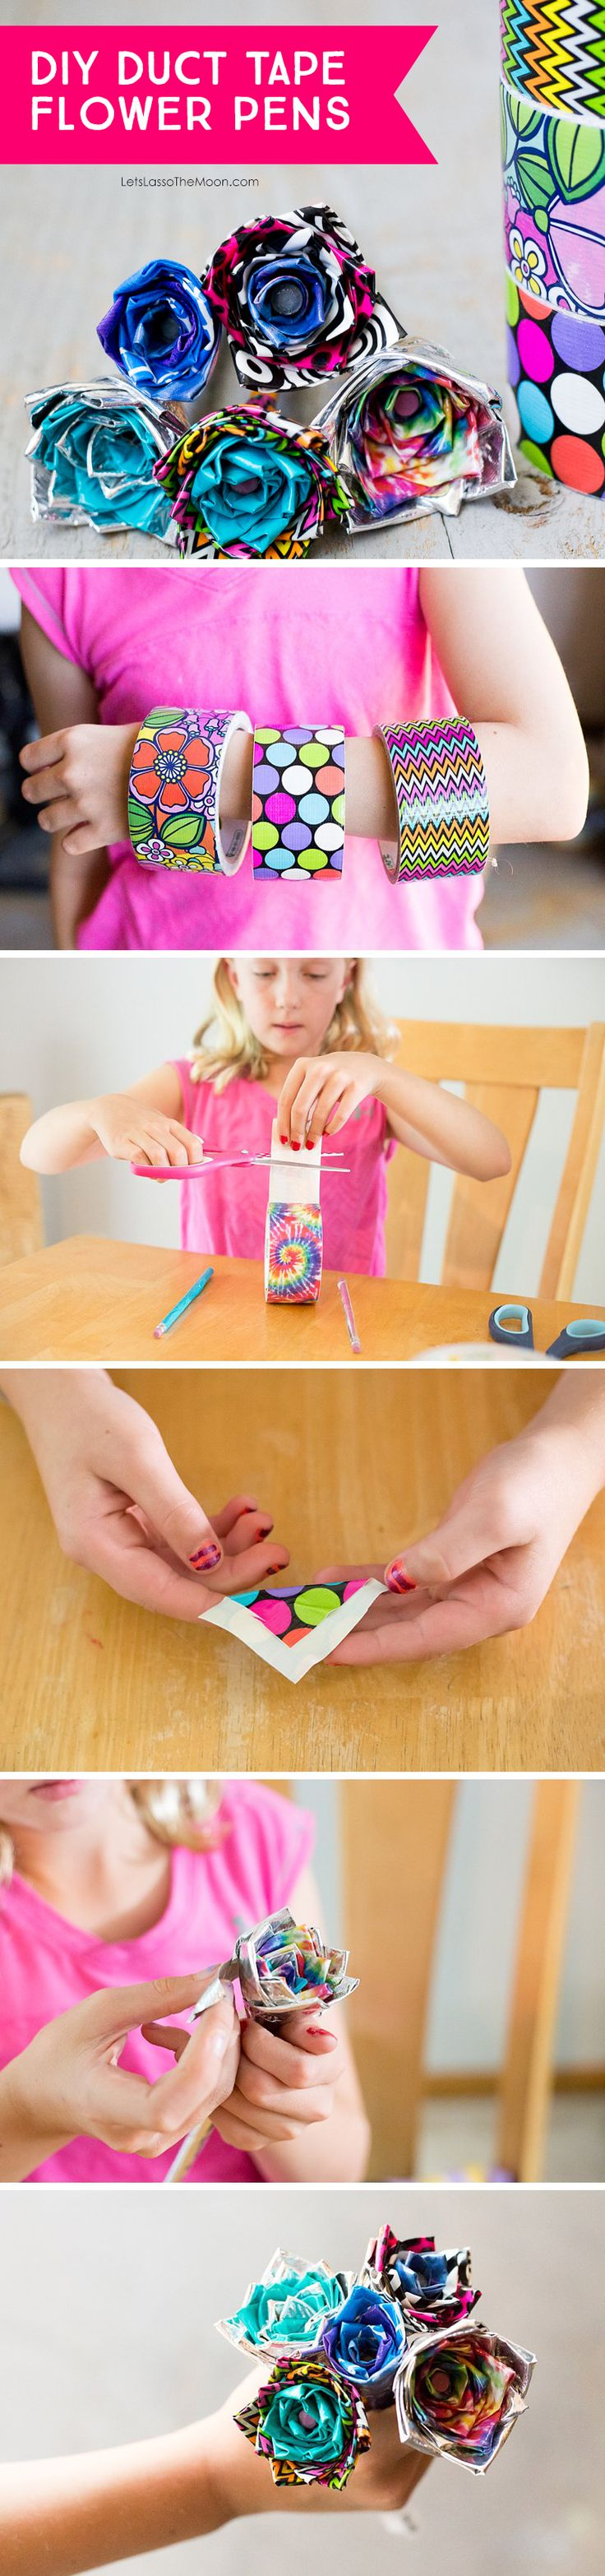 DIY Duct Tape Flower Pens — An Easy Video Tutorial for Kids by Kids *I never knew this was so simple.  Saving this YouTube tutorial for the kids to do. Love that they have photo and video steps. via @zina